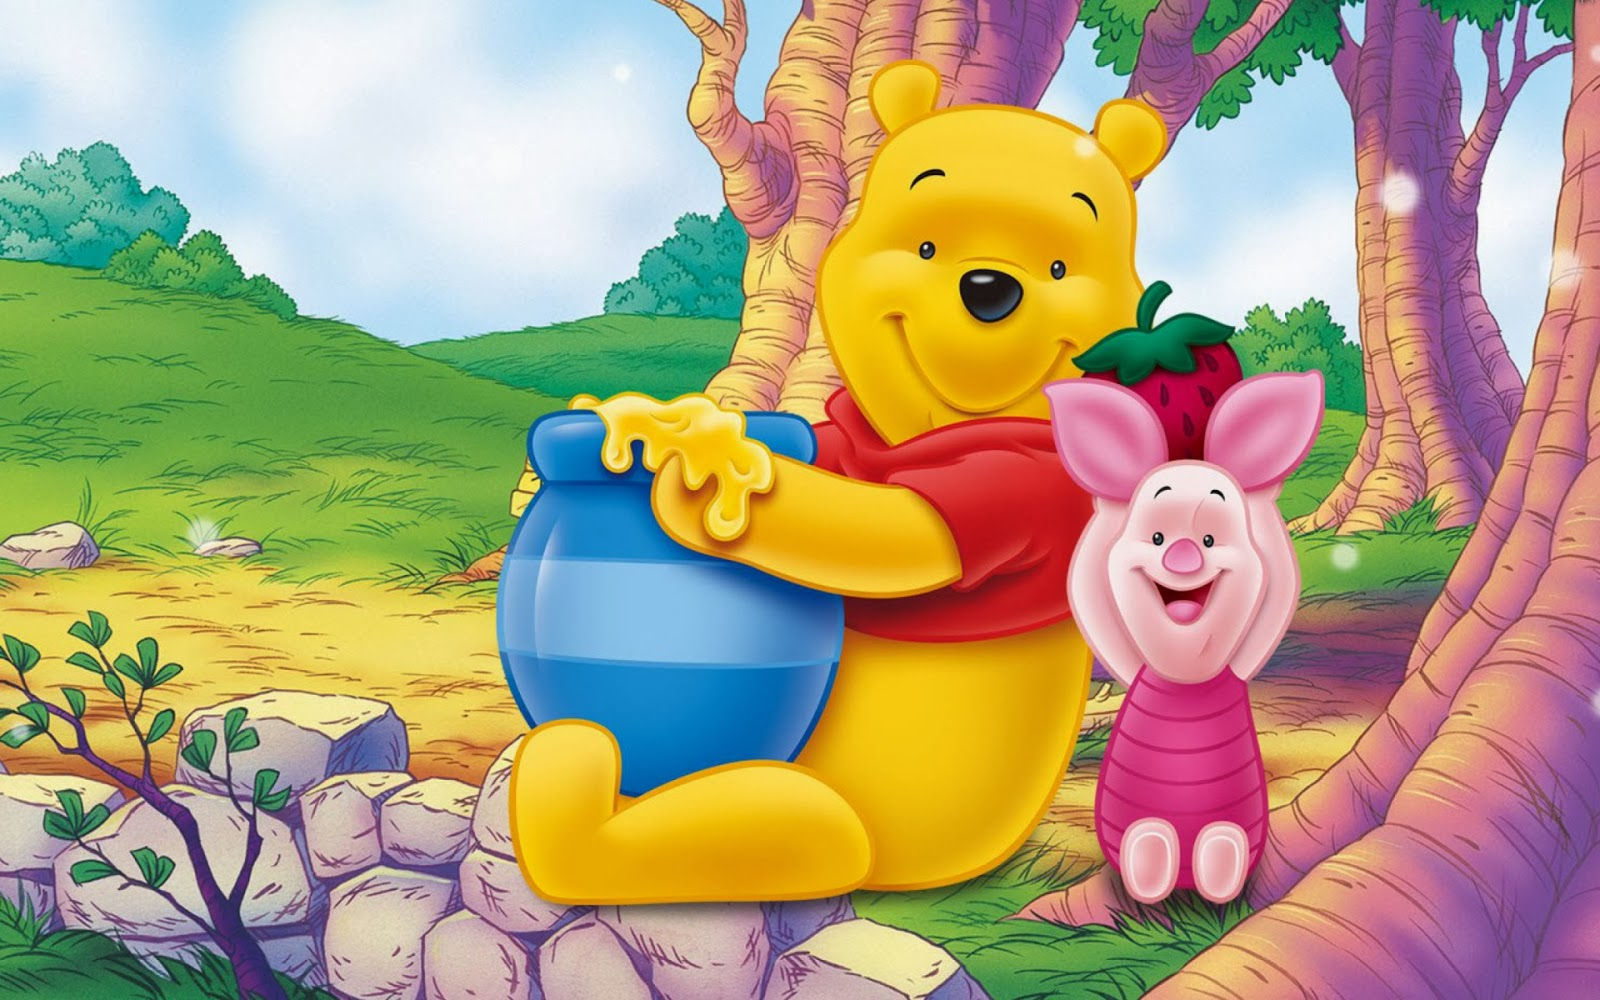 One hundred wallpaper funny winnie the pooh wallpapers hd - Winnie the pooh and friends wallpaper ...